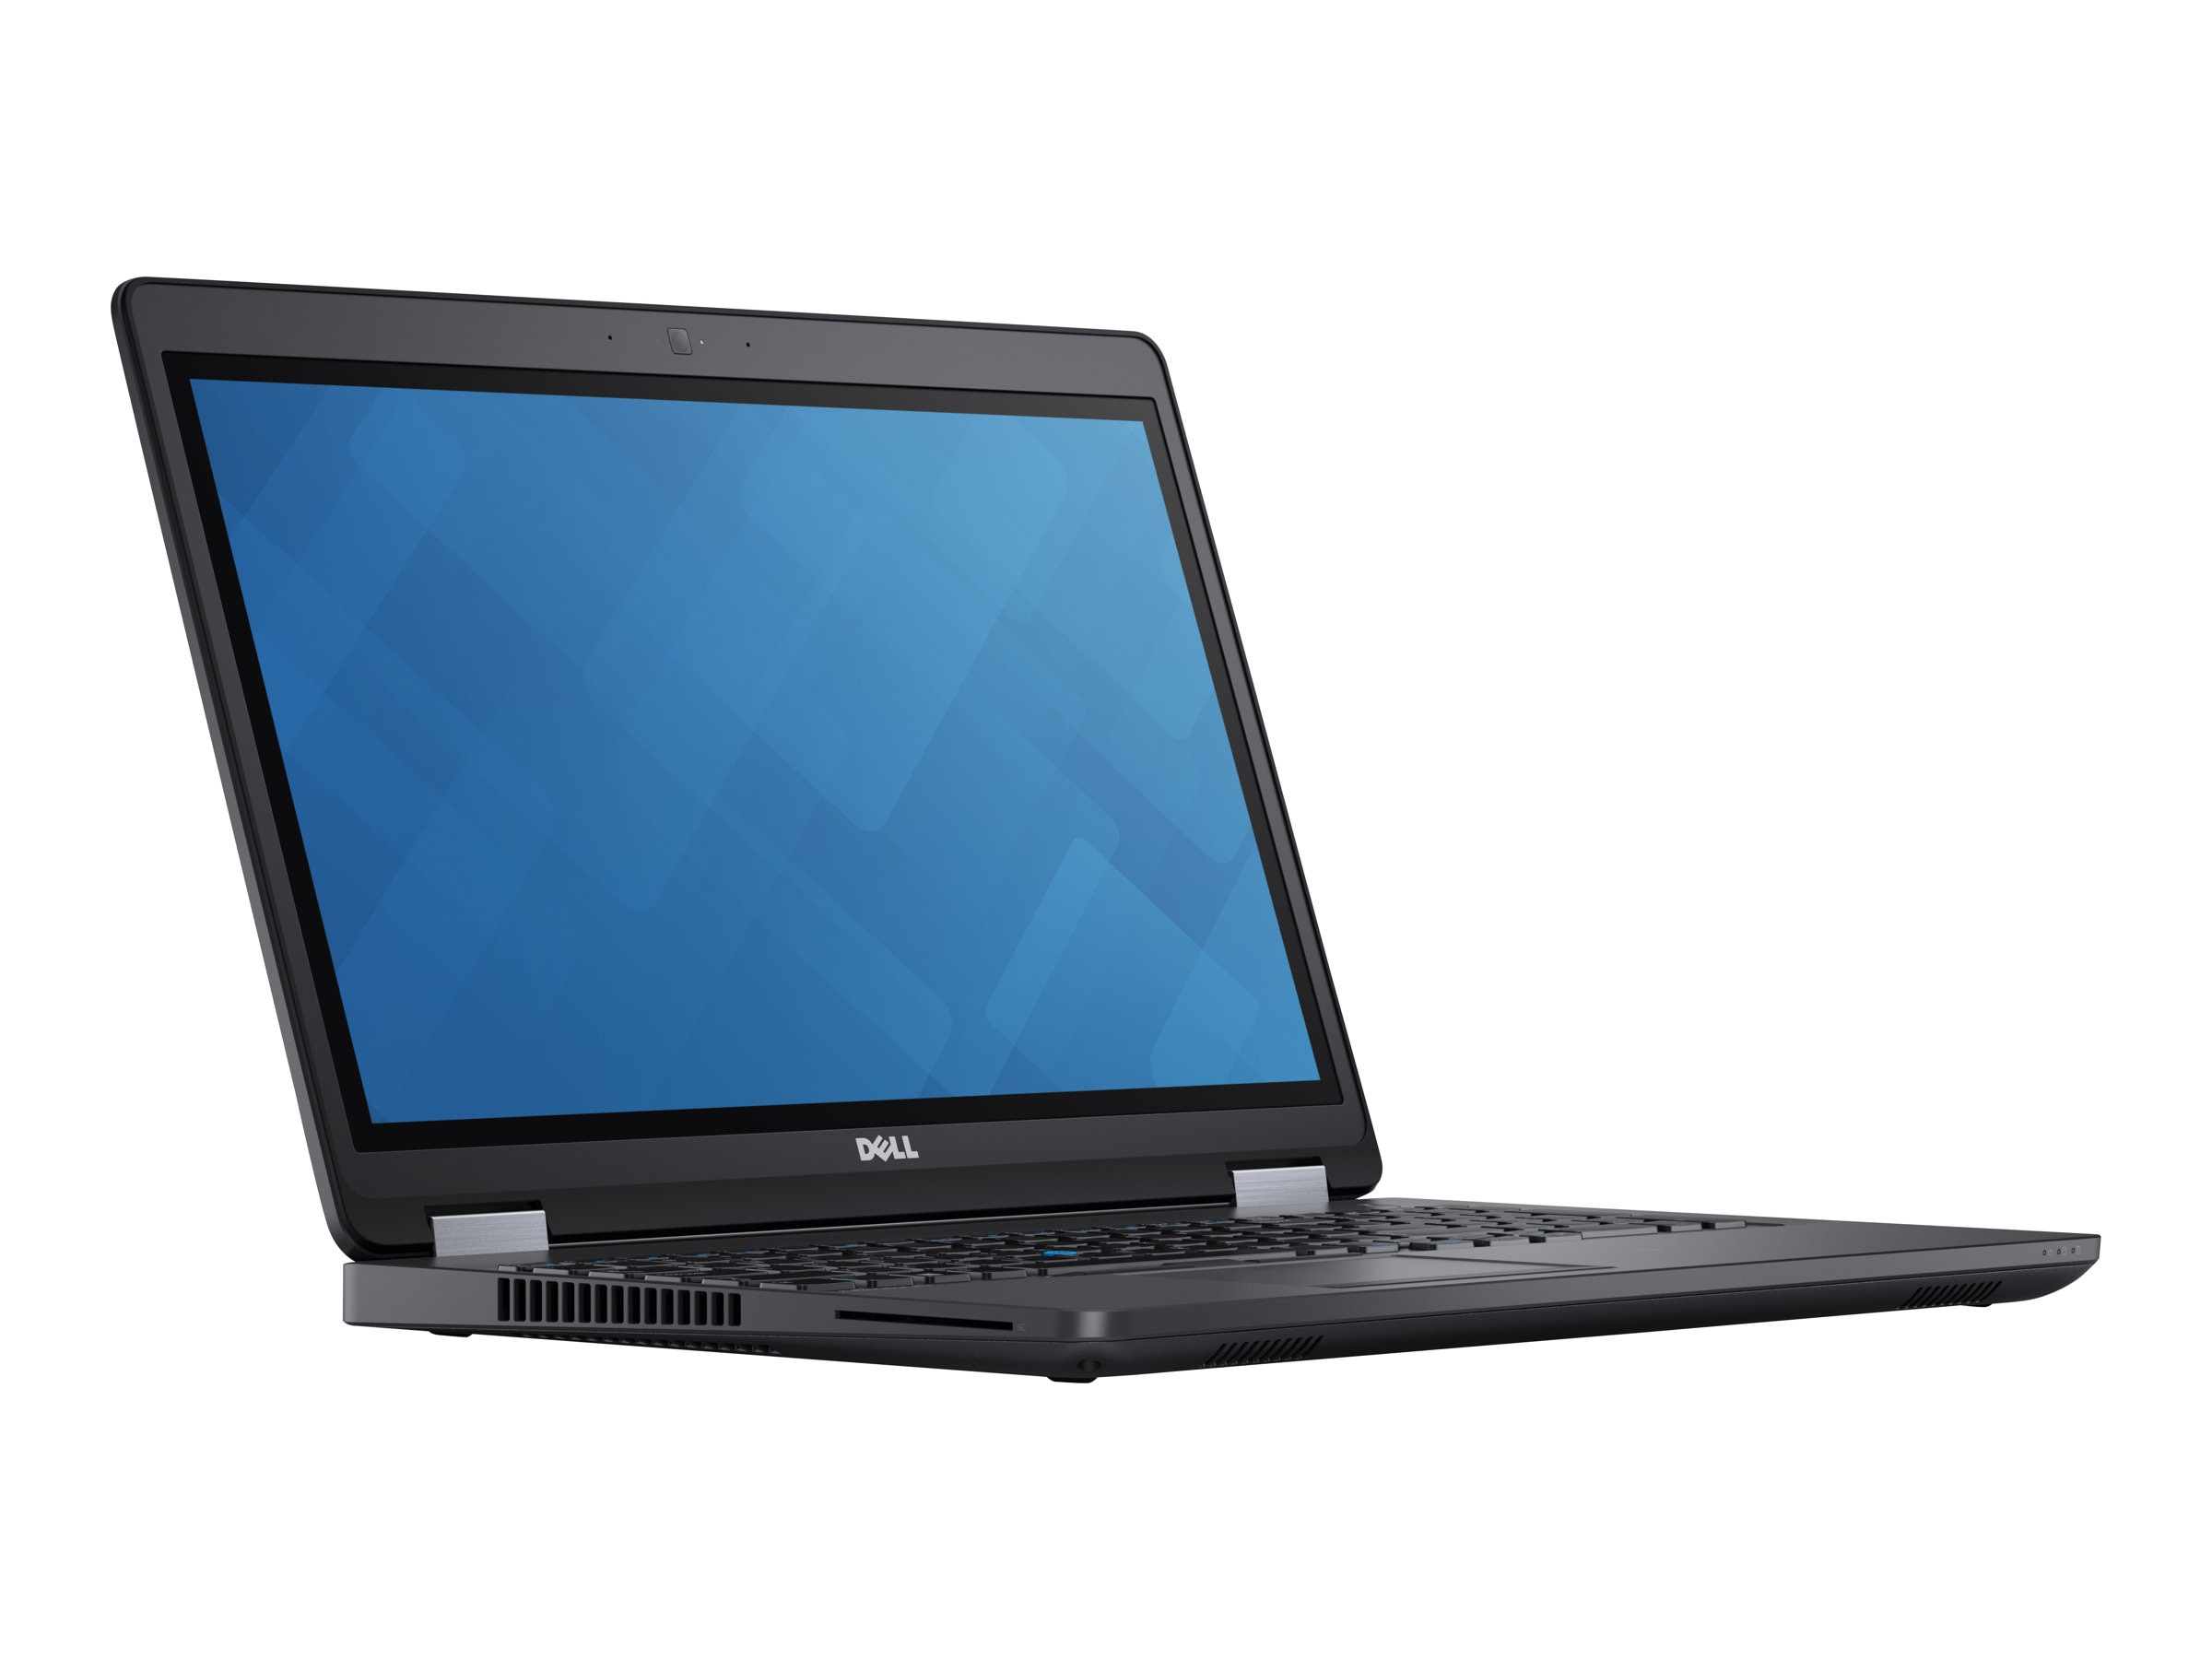 Dell GM3G4 Image 3